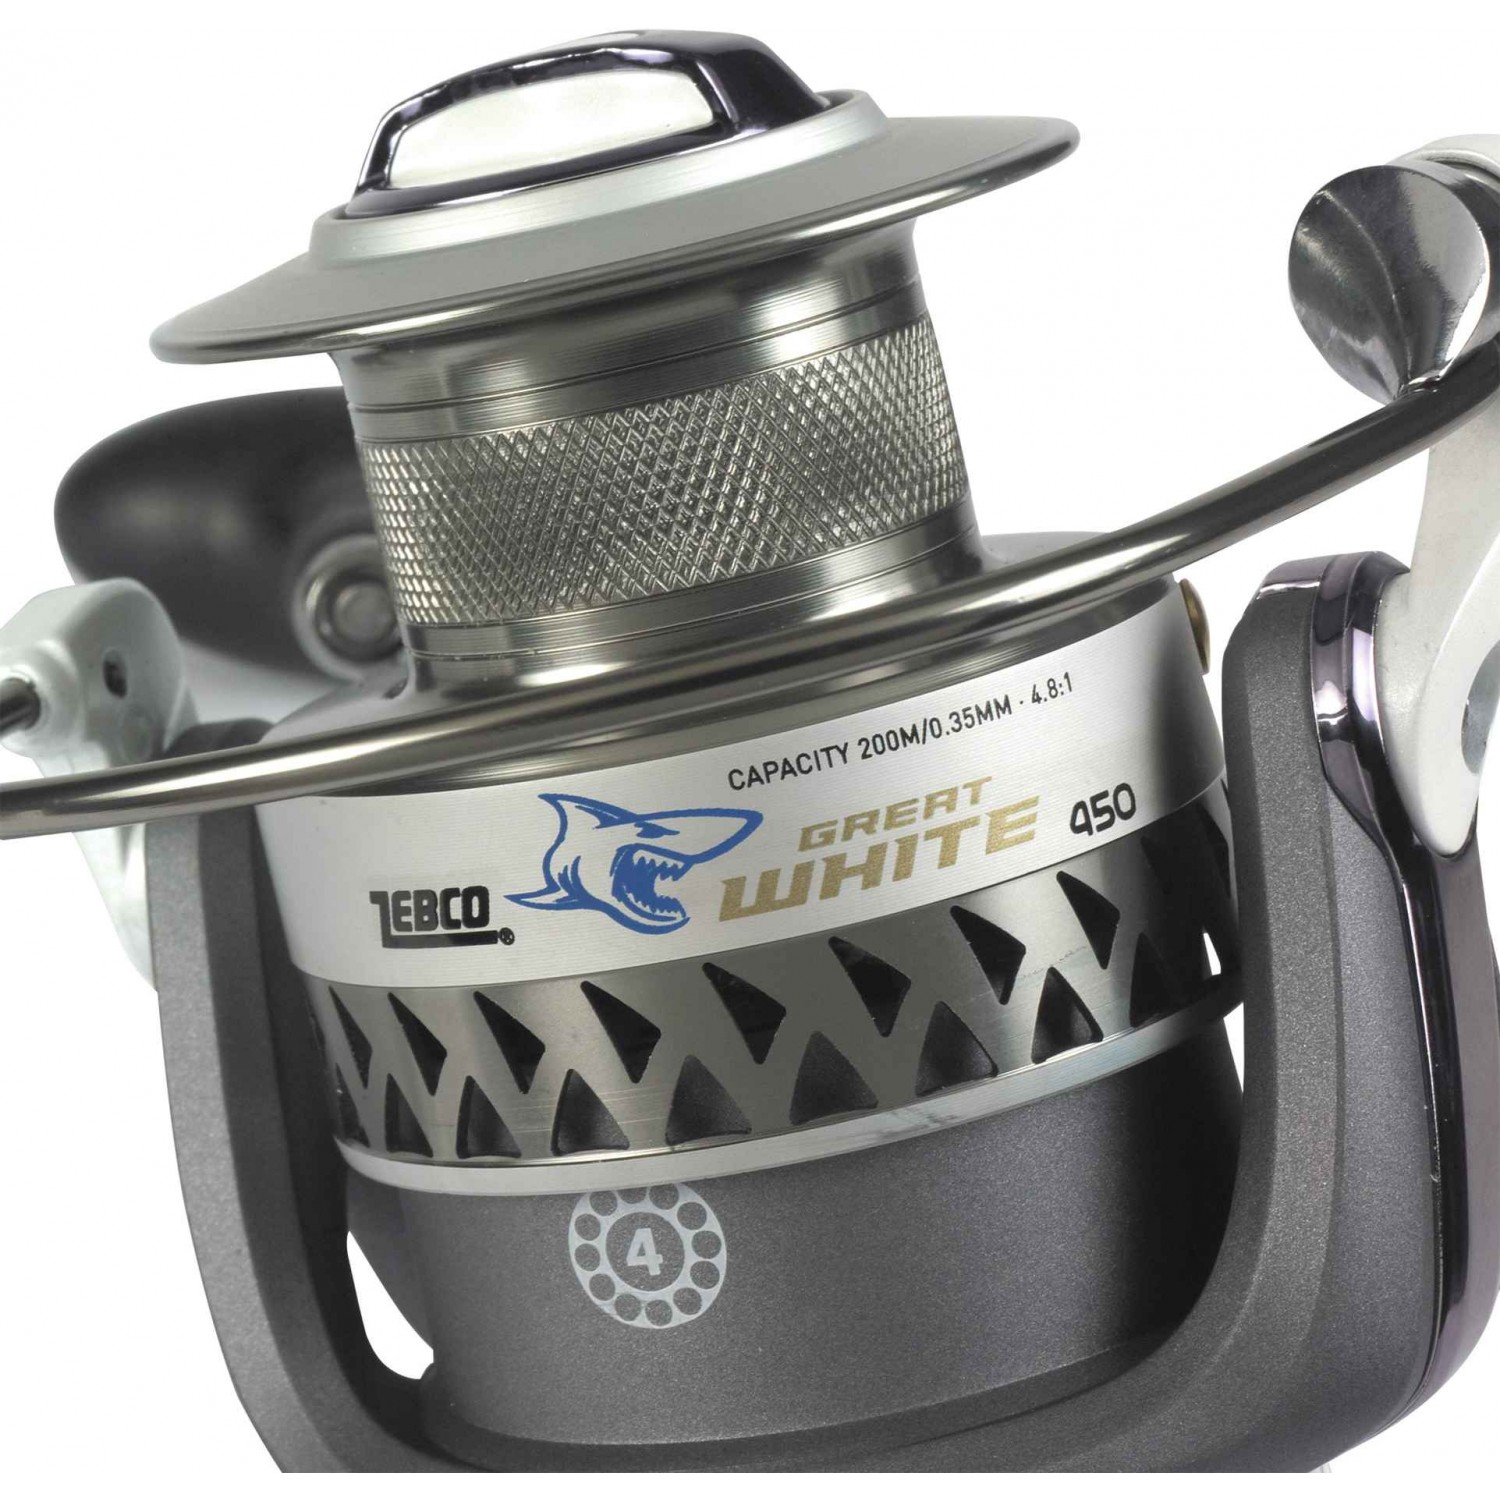 Zebco Great White 400